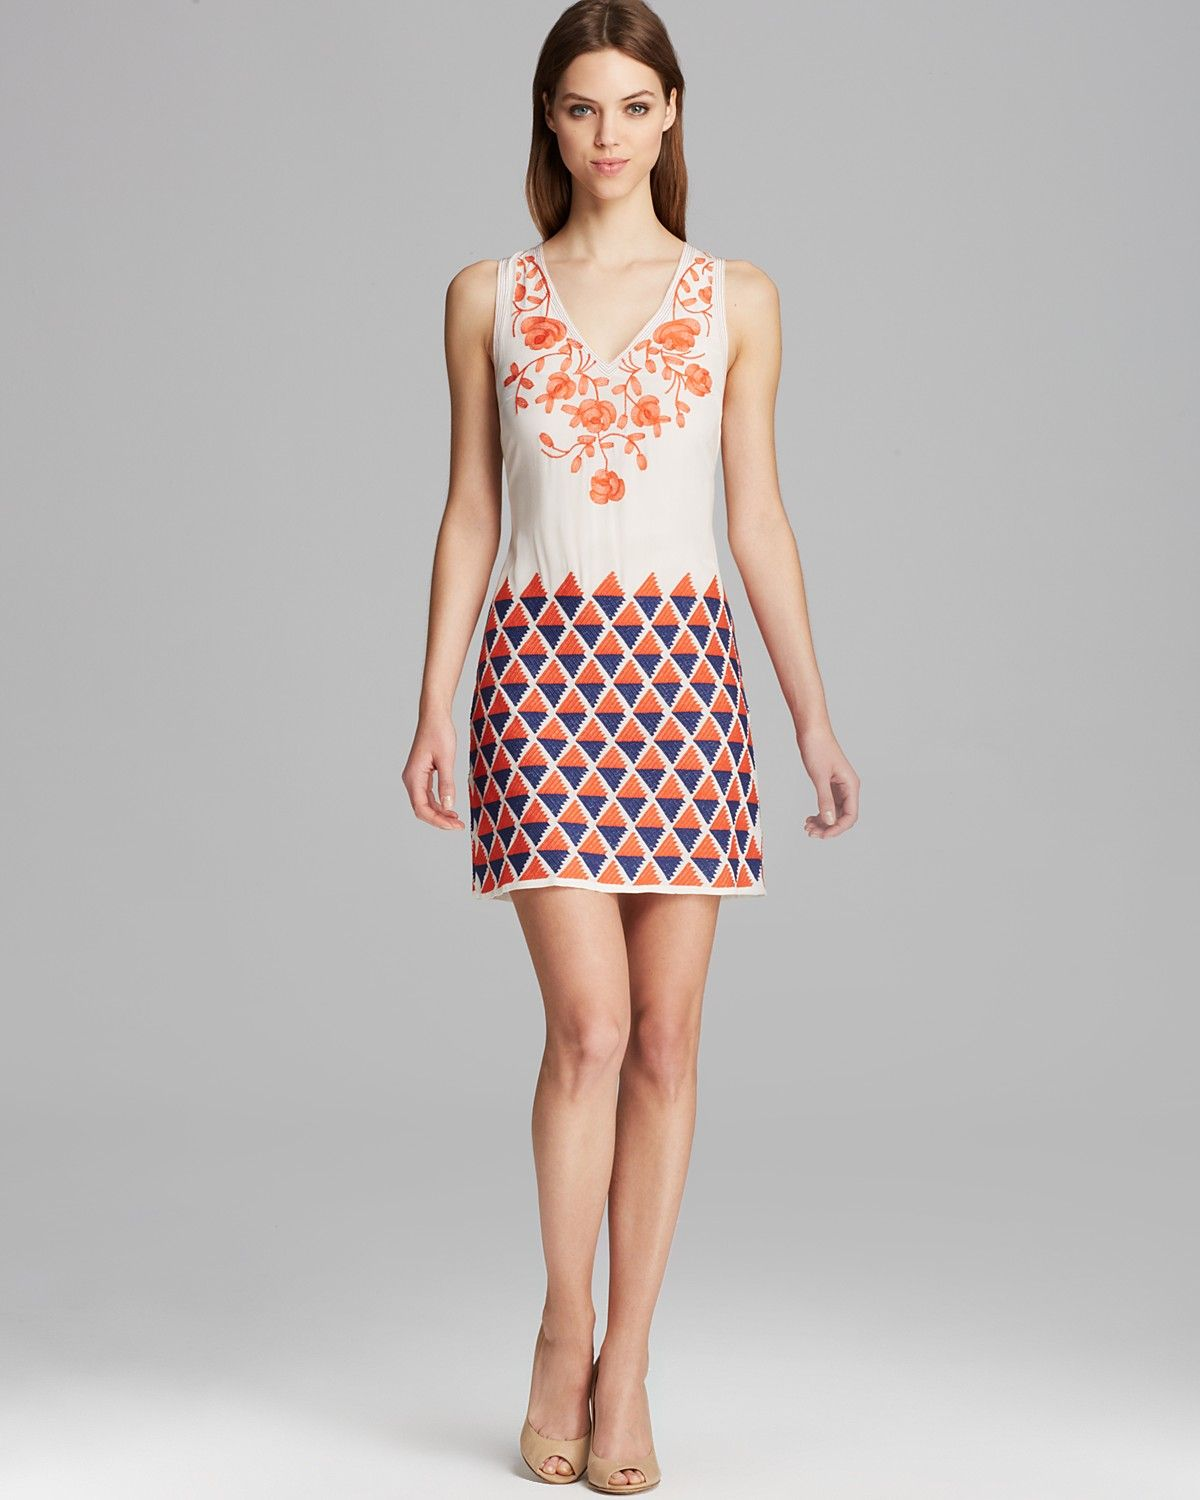 Tracy Reese Dress - Sleeveless Embroidered Shift   Bloomingdale's